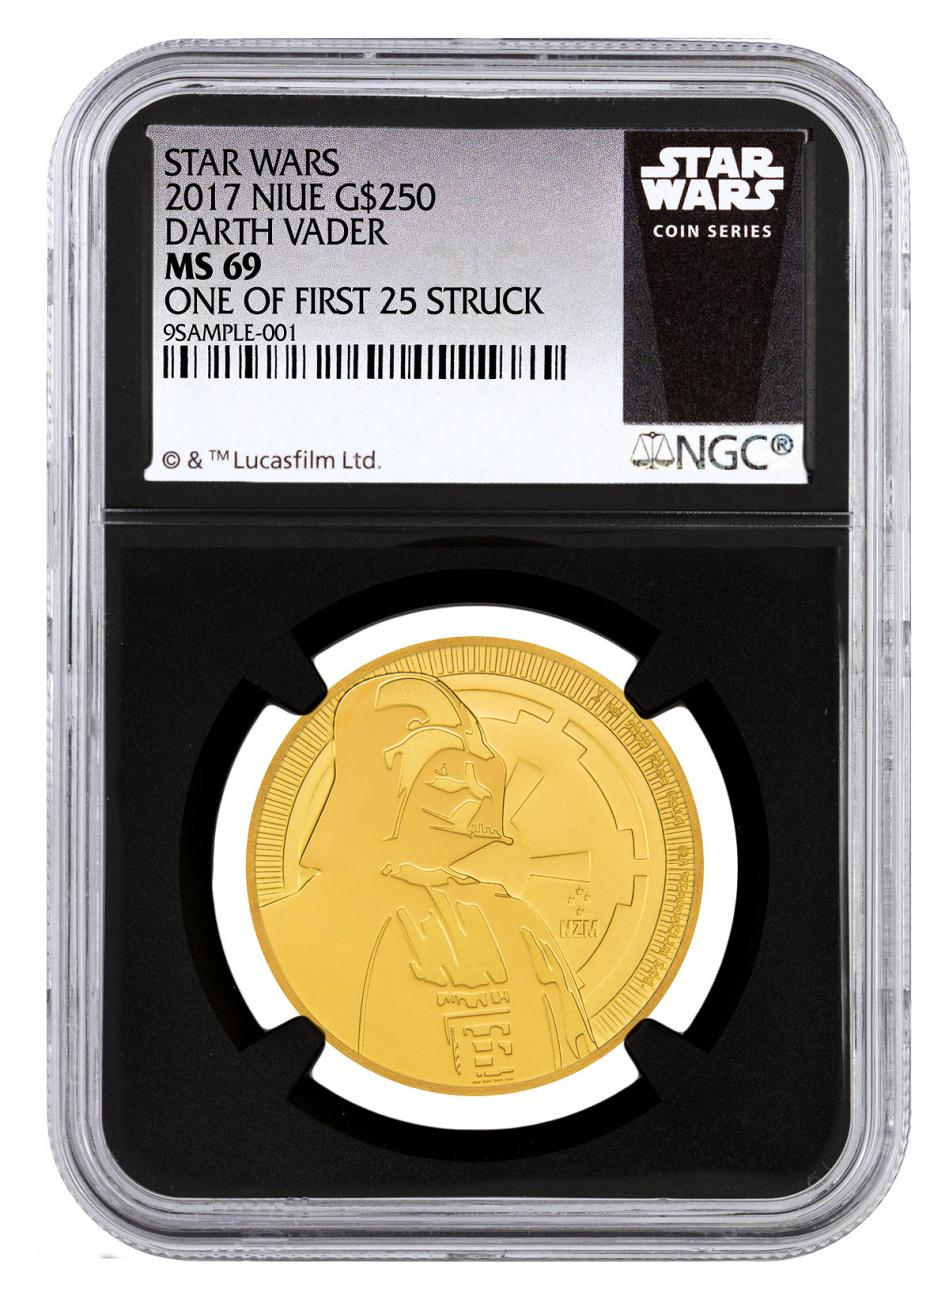 2017 Niue Star Wars Classic - Darth Vader 1 oz Gold $250 Coin NGC MS69 One of First 25 Struck Black Core Holder Exclusive Star Wars Label